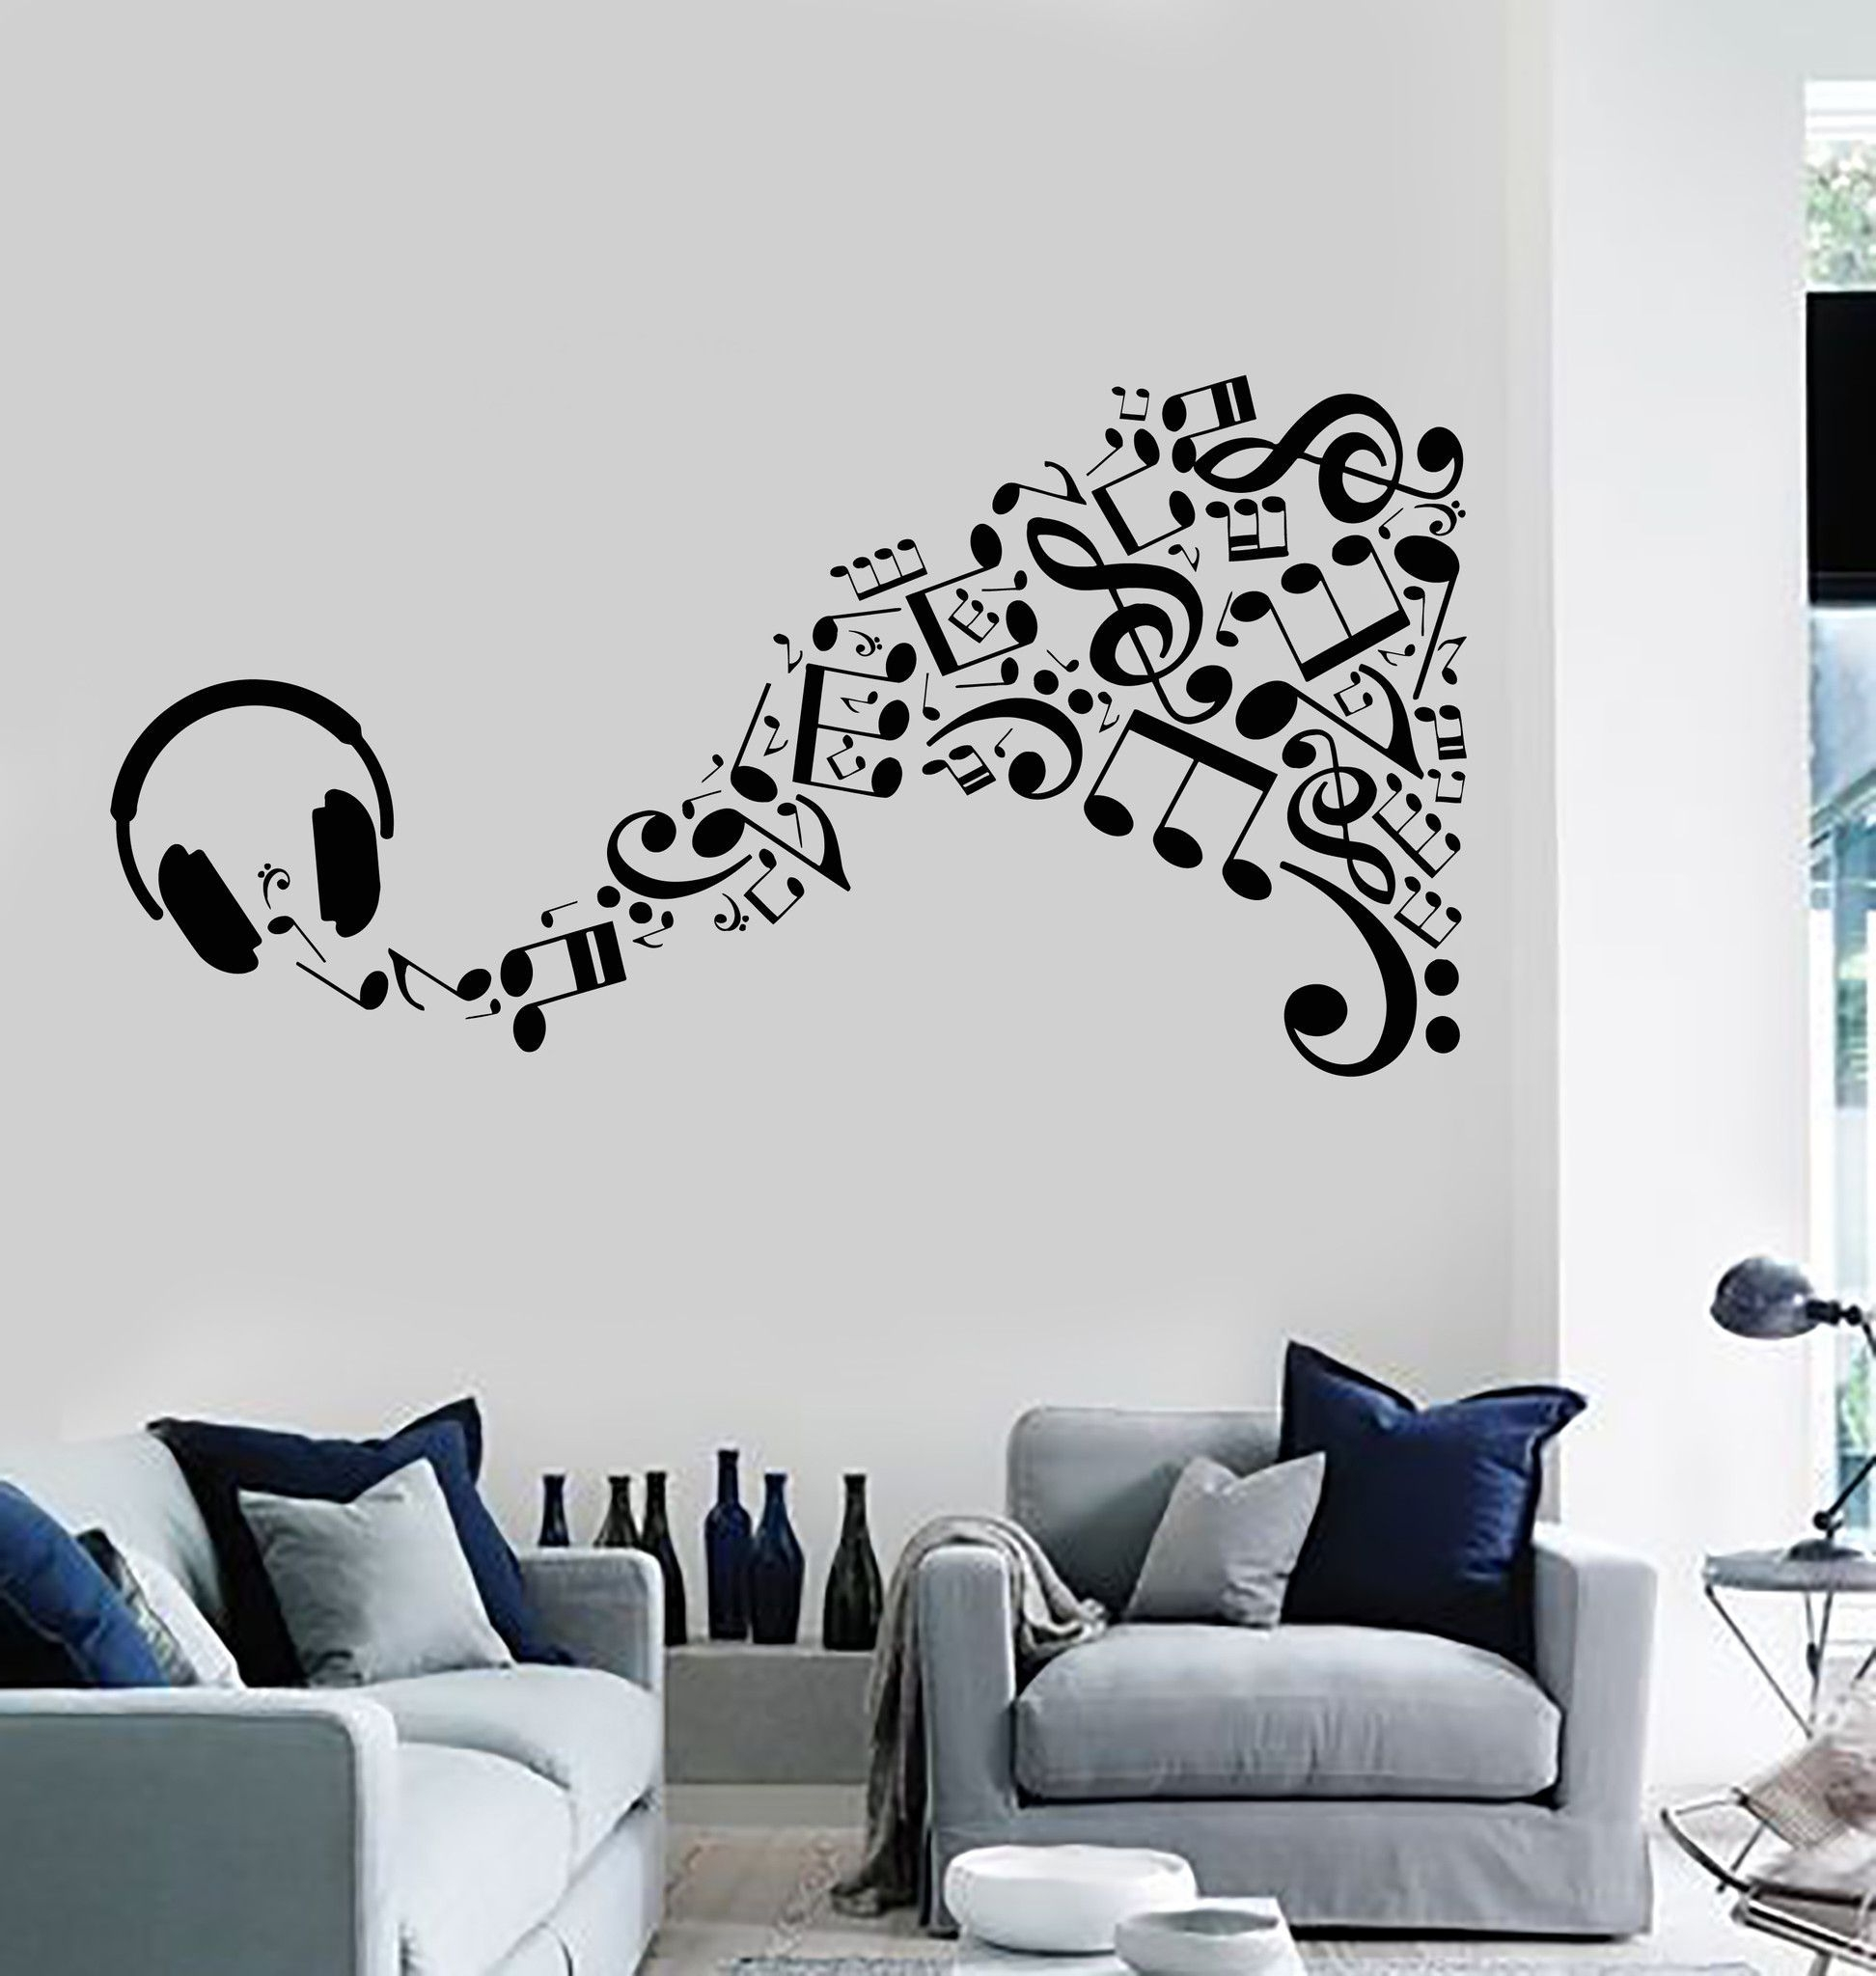 Music Notes Wall Art Decals With Current Vinyl Wall Decal Headphones Musical Notes Music Art Stickers (View 15 of 15)